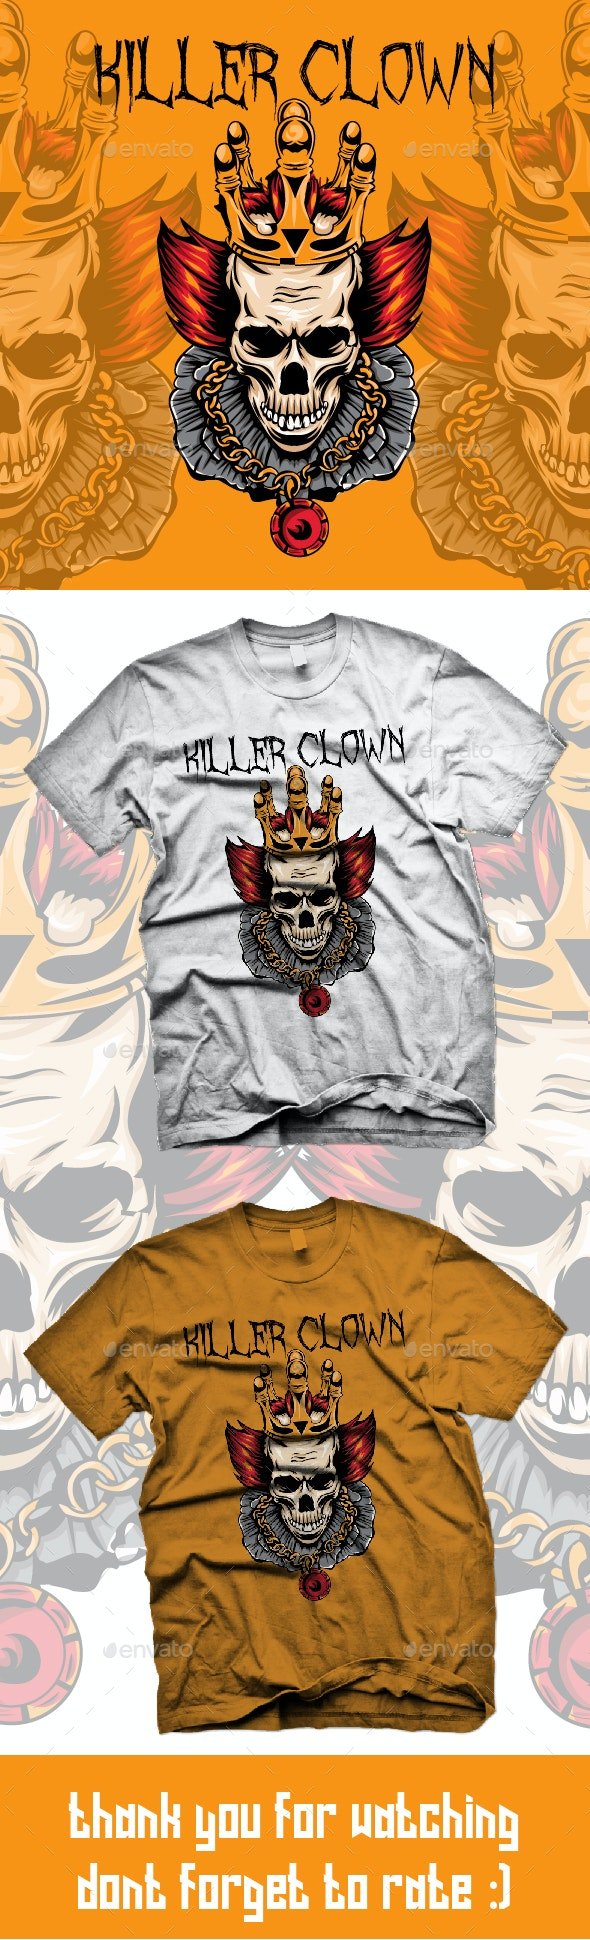 Killer Clown - T-Shirts